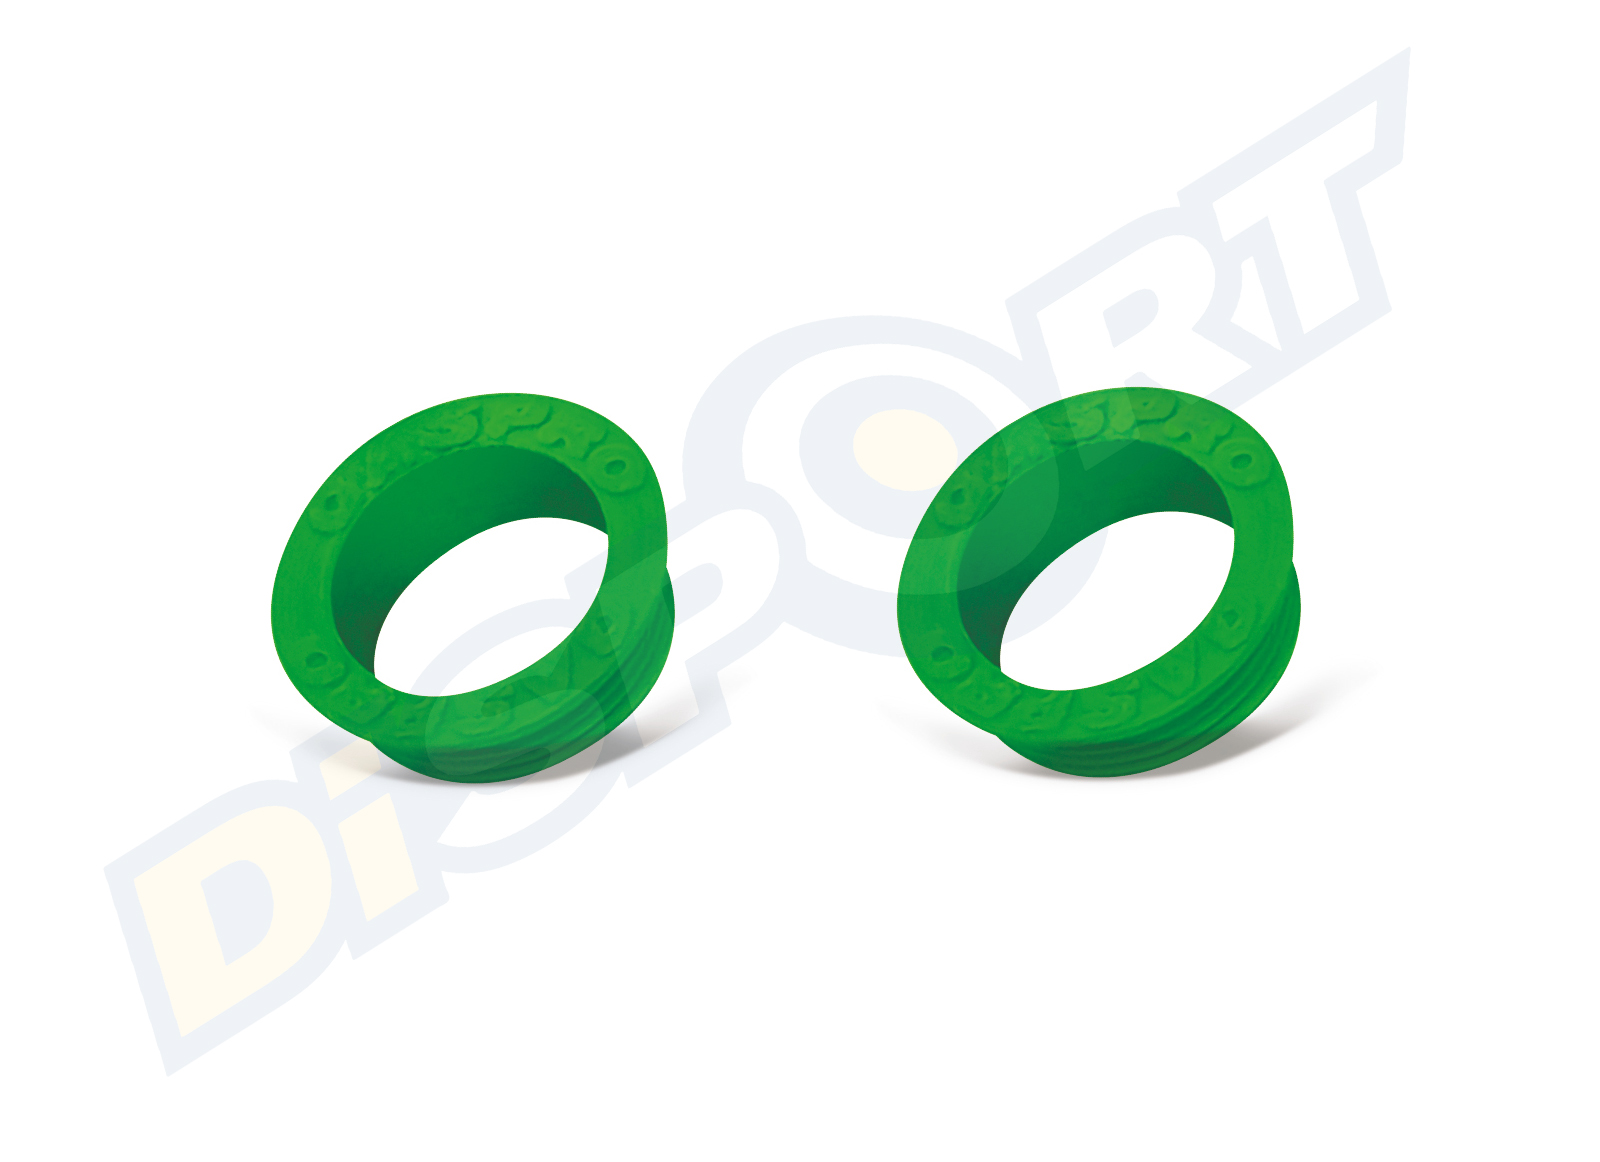 GAS PRO OLYMPIC RECURVE SCOPE CENTER RINGS